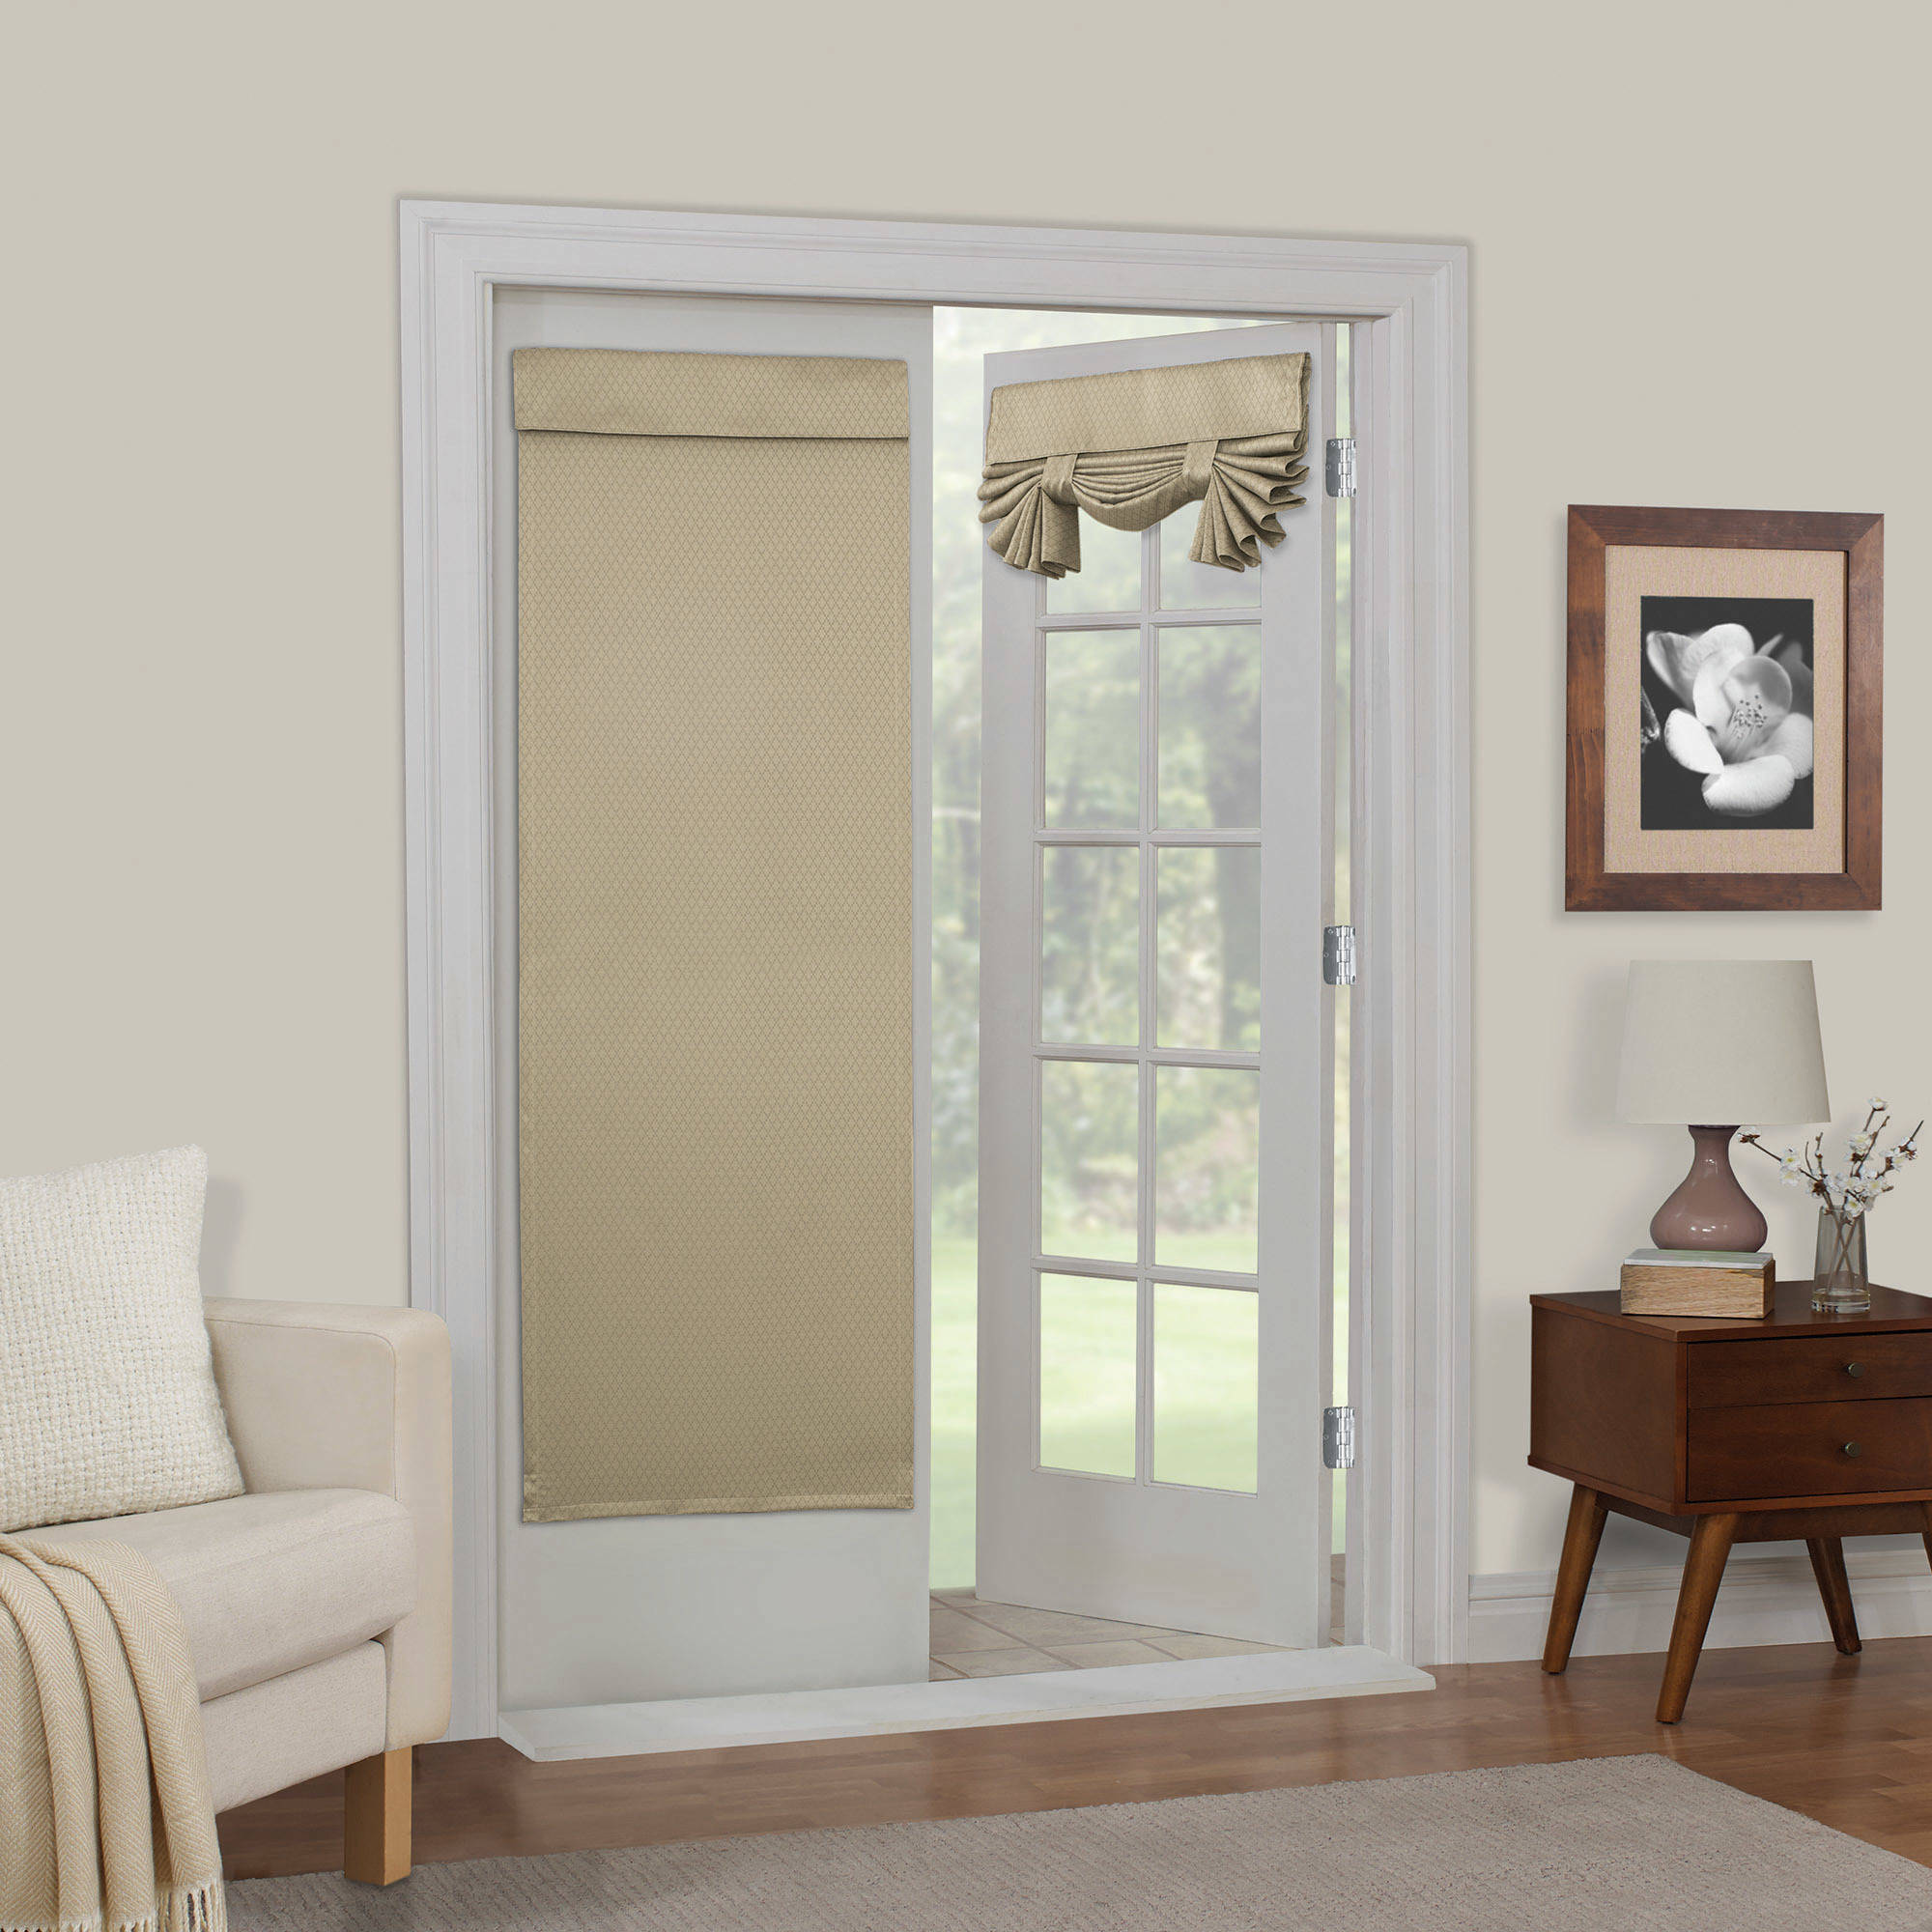 Mainstays Diamond Room Darkening French Door Panel, Multiple Colors